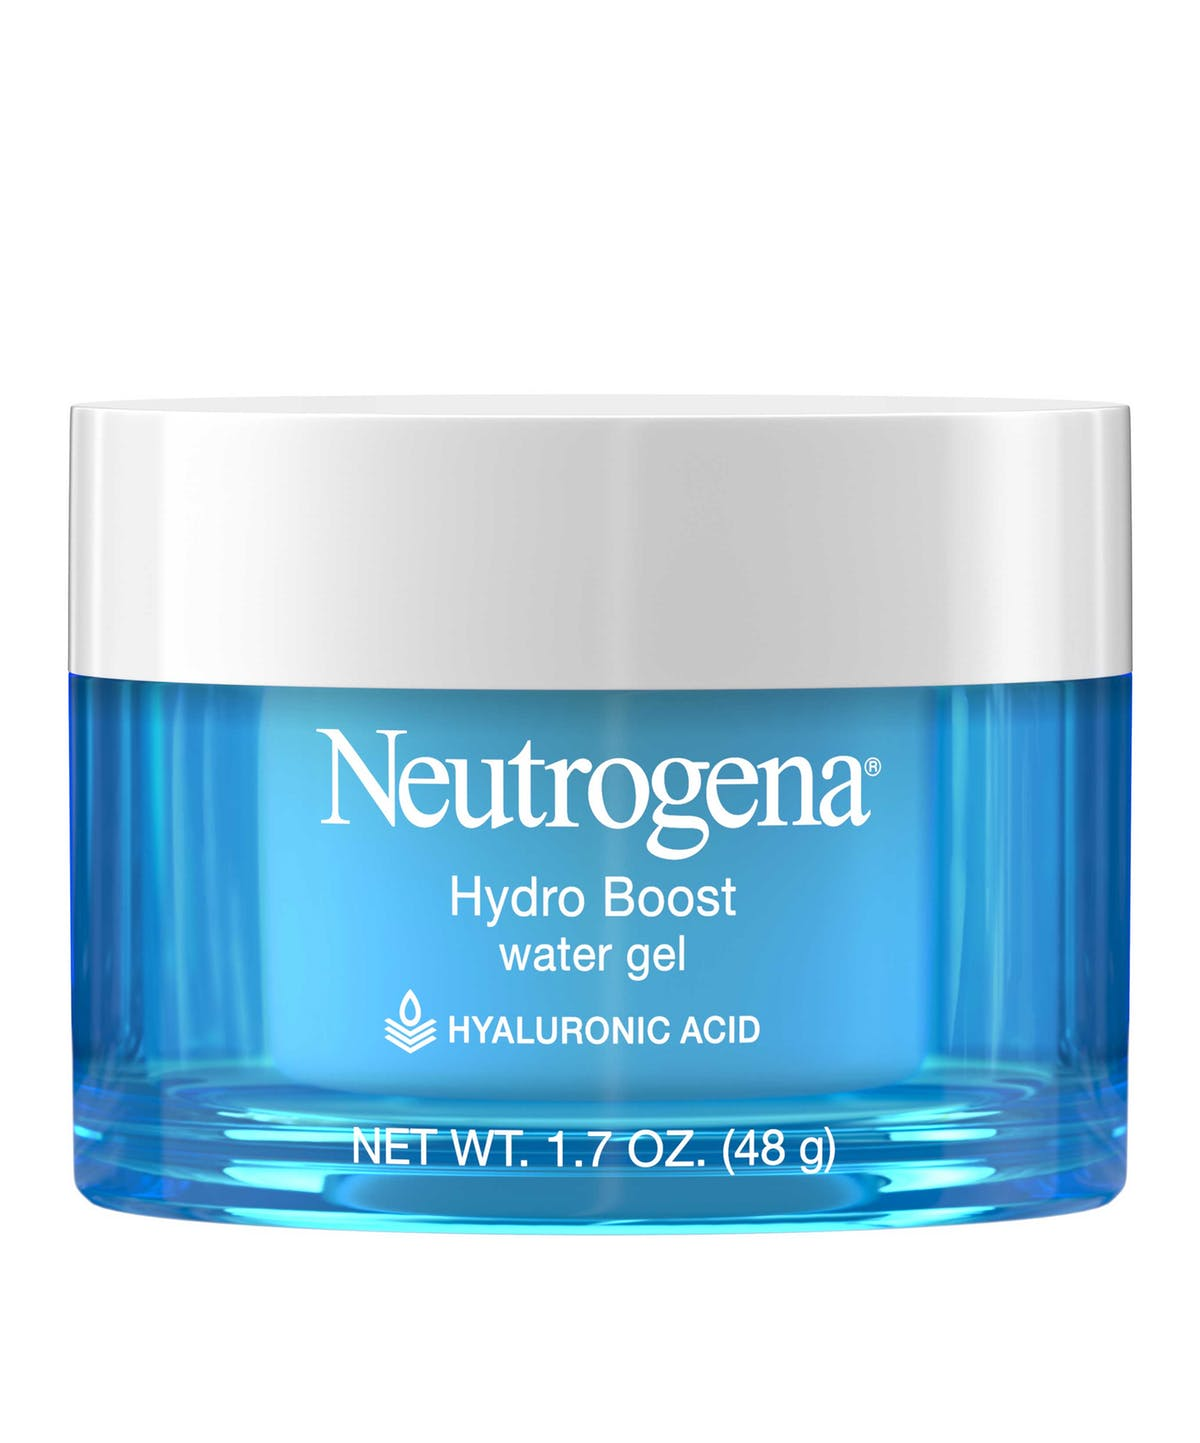 Cheap Skin Care Products Luxury Brands neutrogena